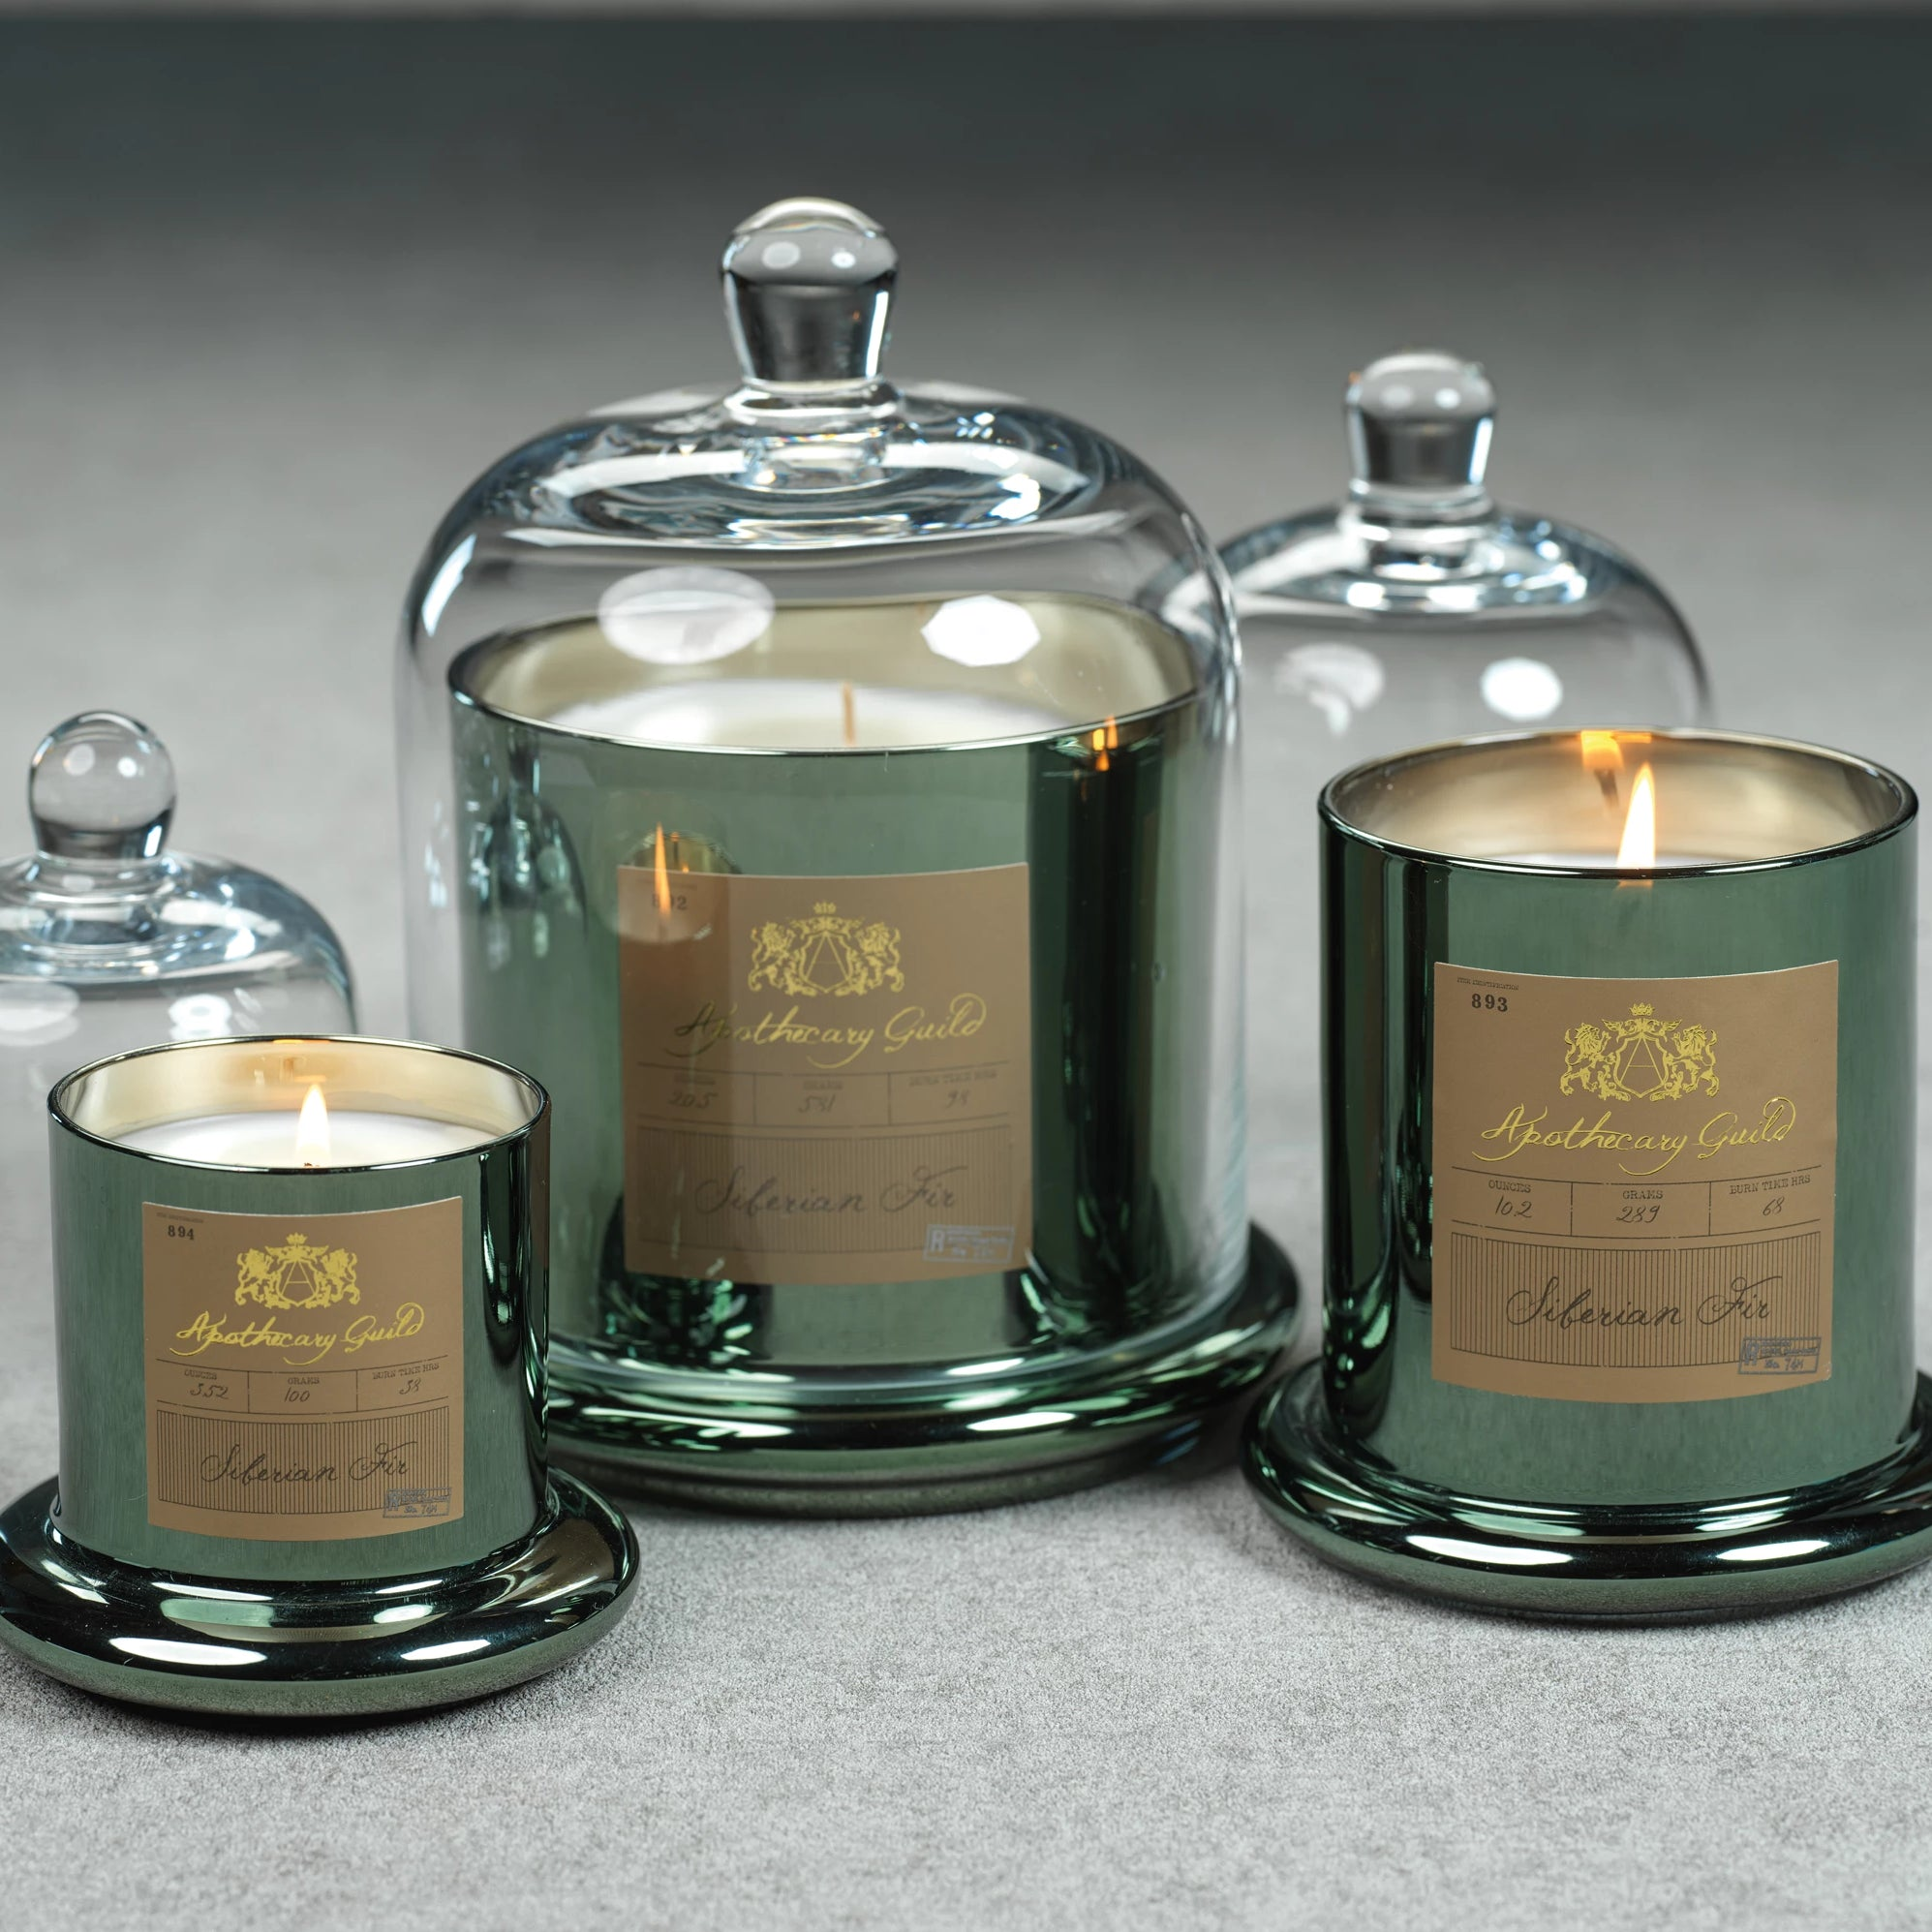 Apothecary Guild Domed Candle - Green - CARLYLE AVENUE